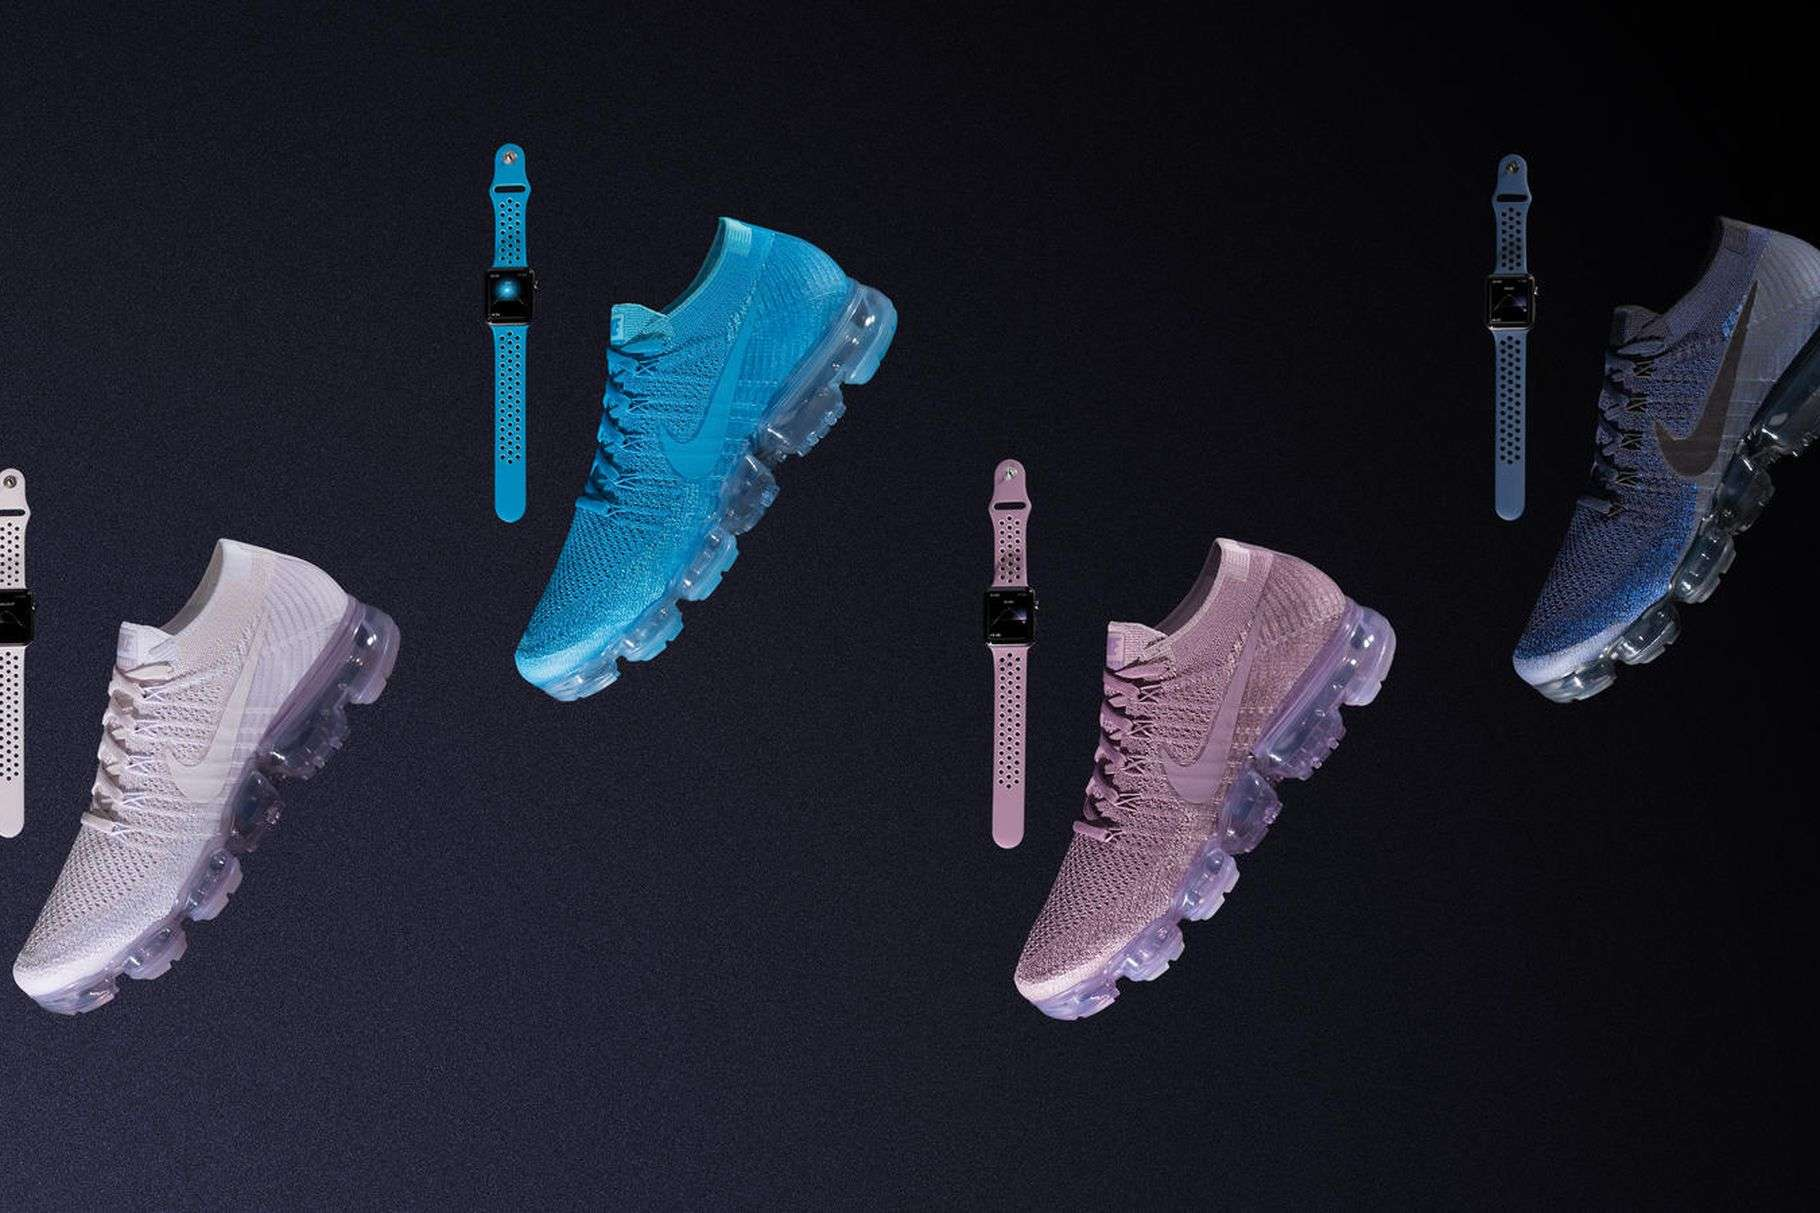 Nike_Vapormax_DTN_Direction2_Full_Set_16x9_native_1600.0